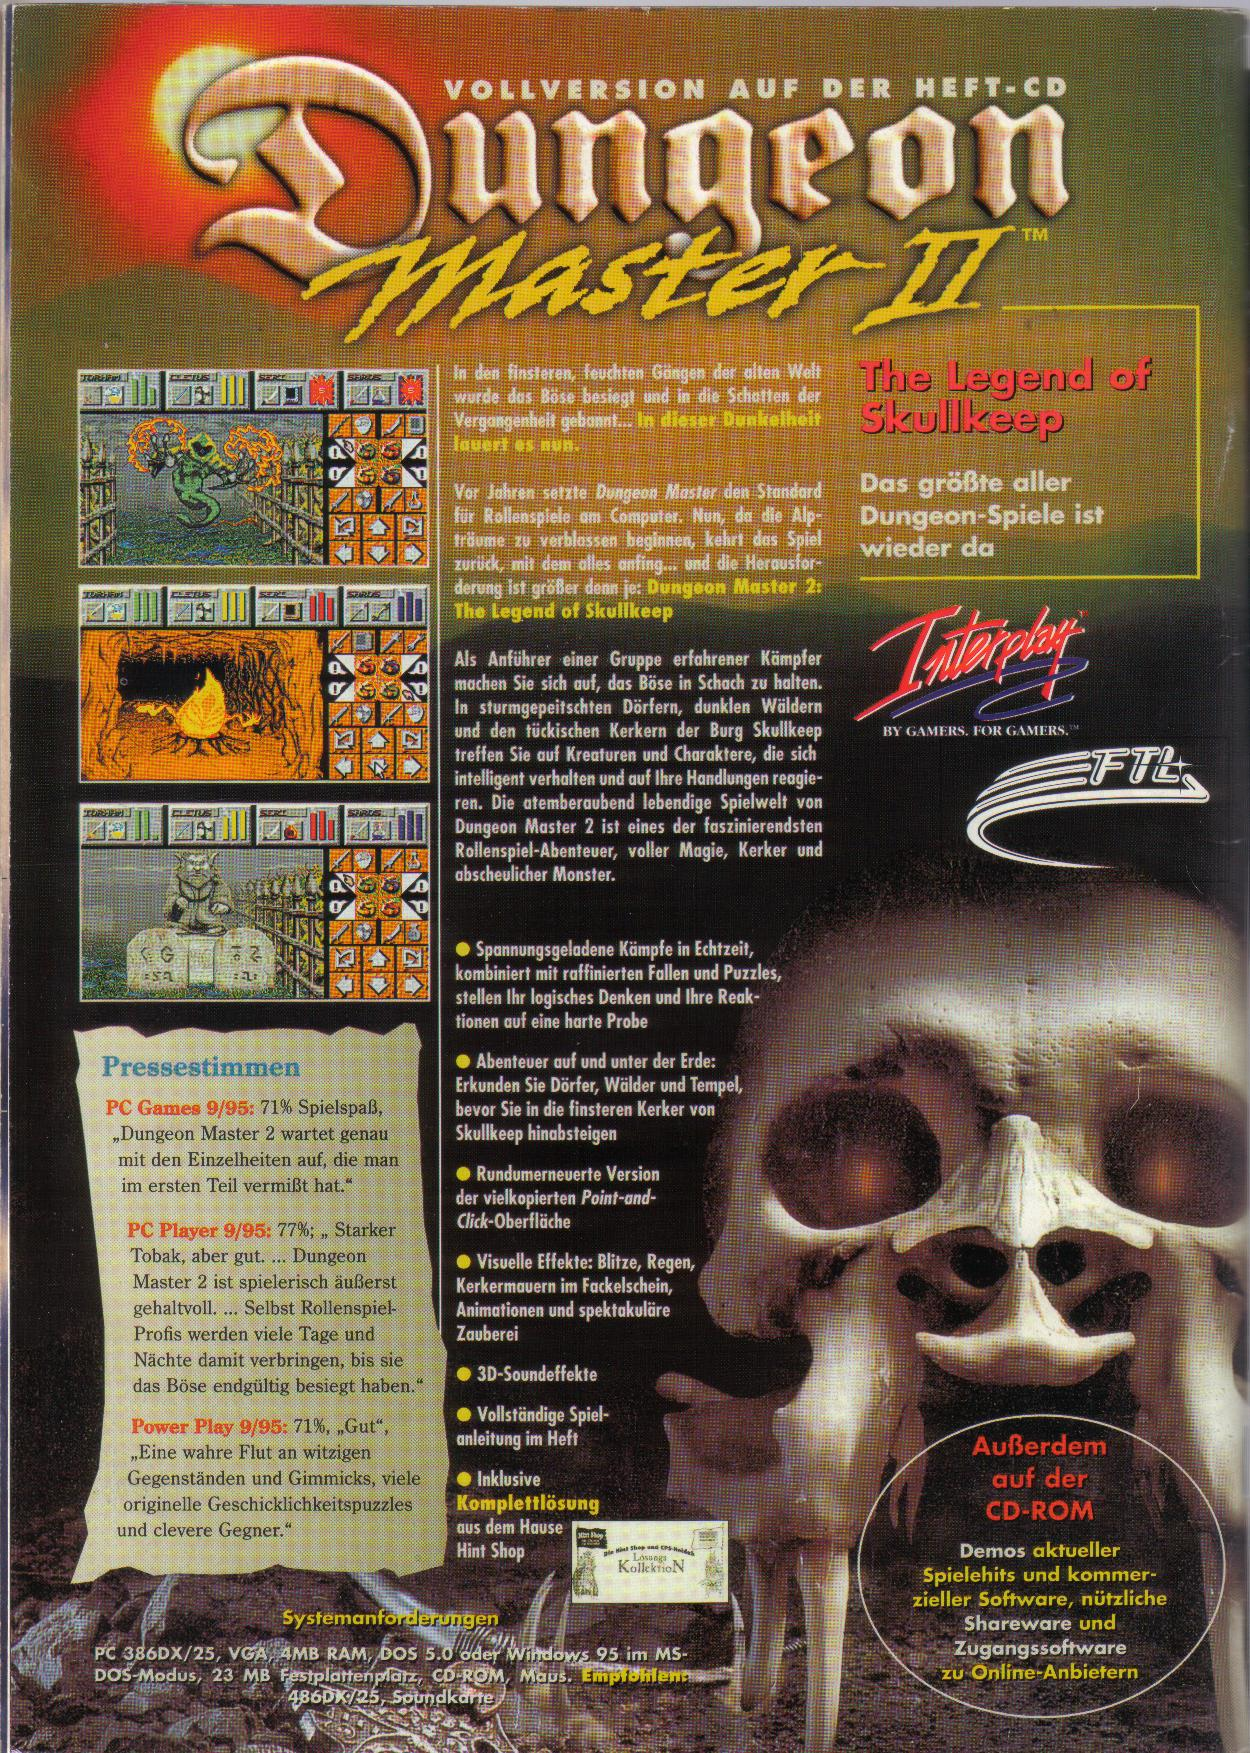 Dungeon Master II for PC (German, Best Seller Games) Page 52